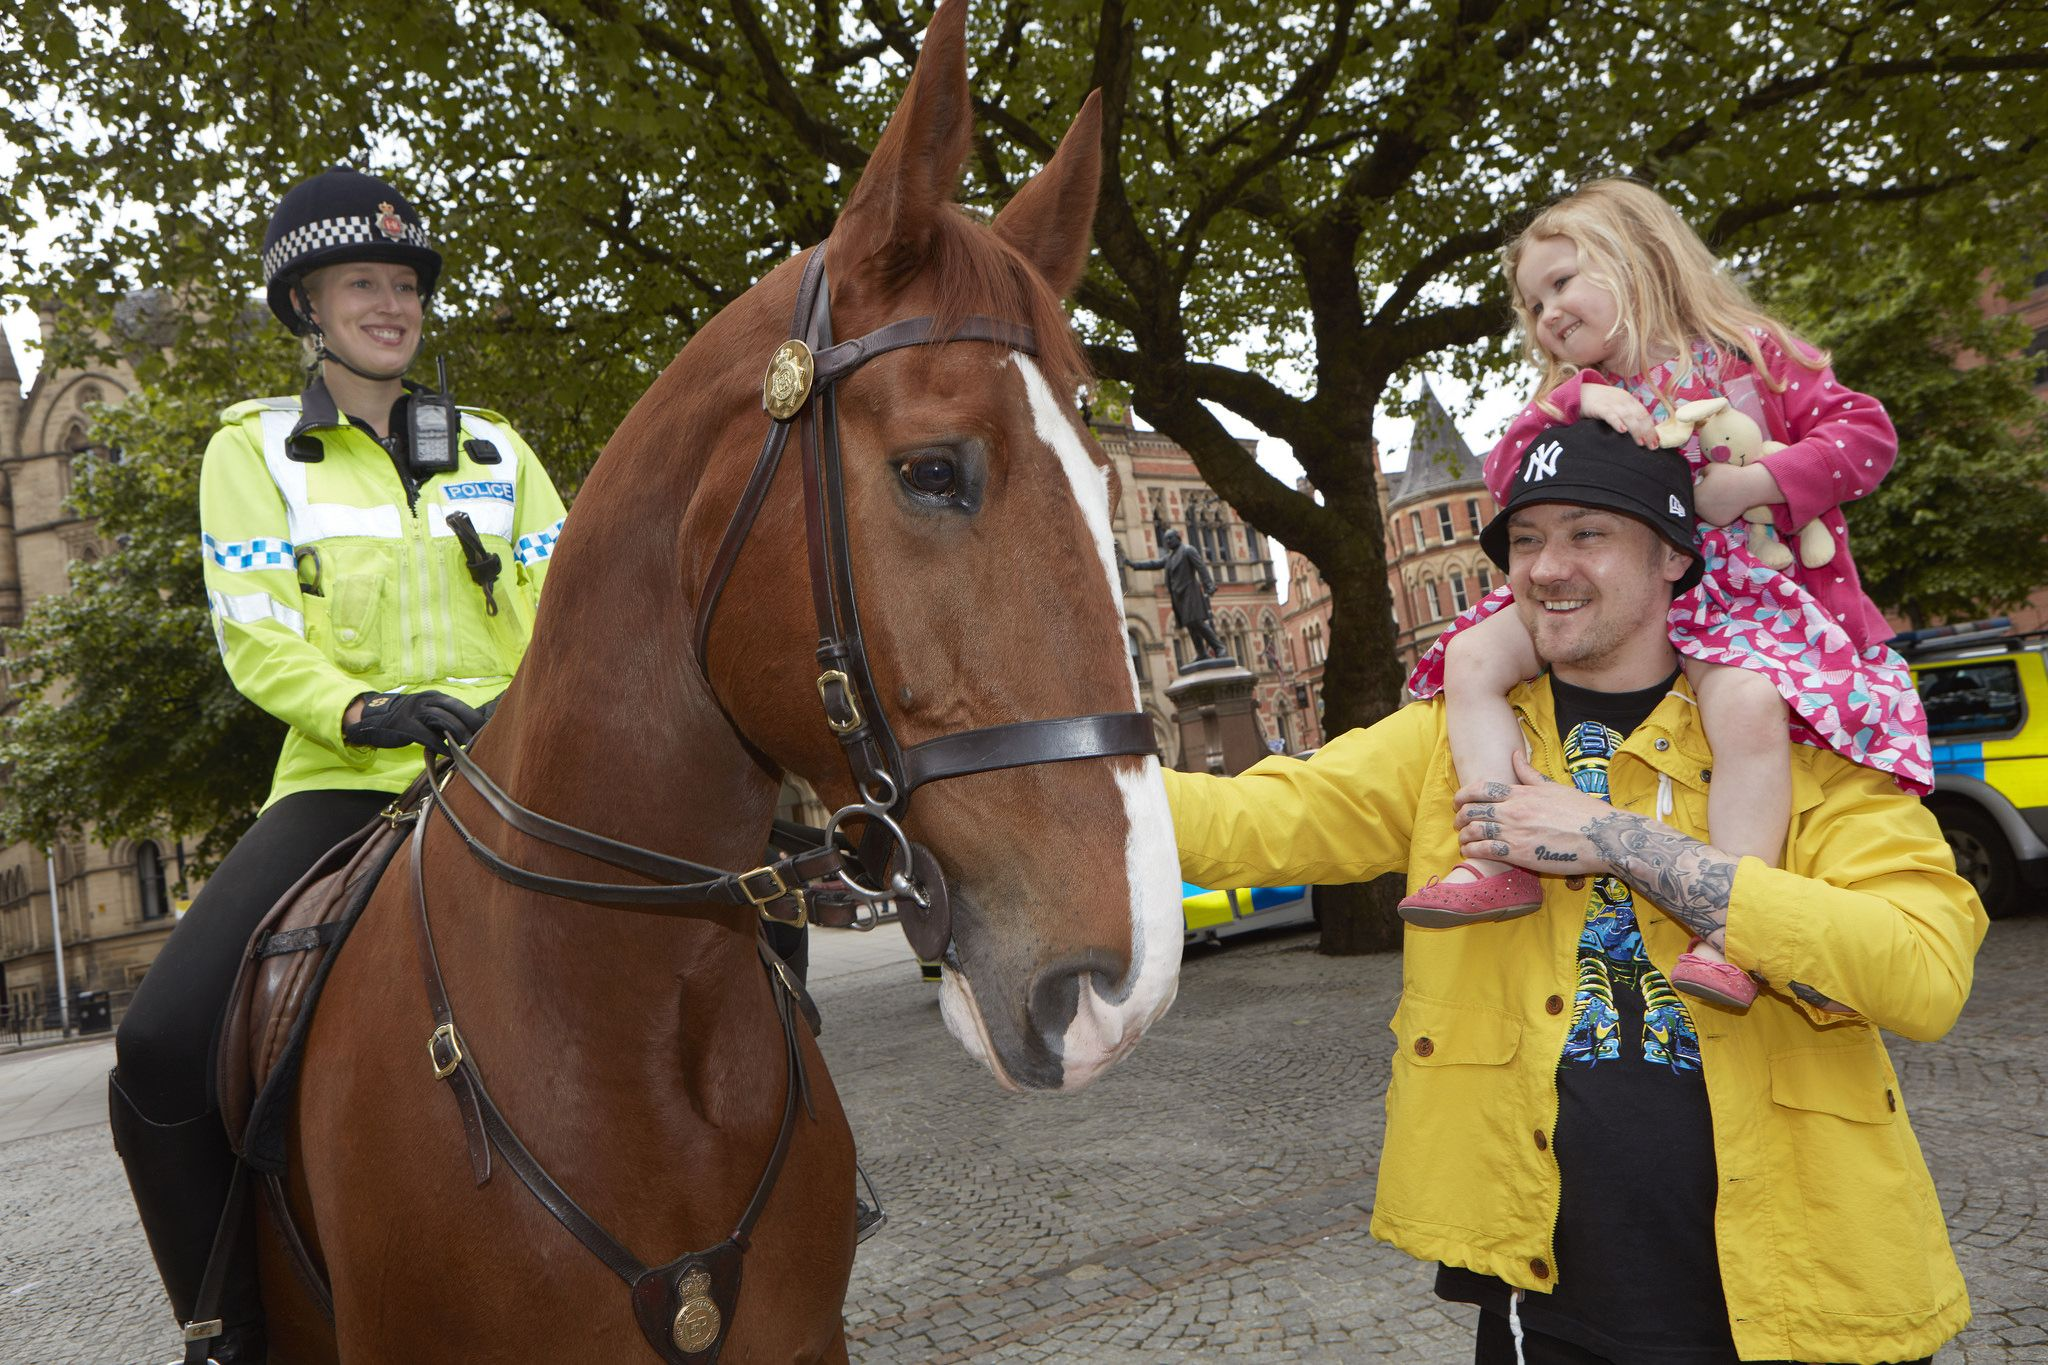 Horse Road Safety Campaign British horse society, Horses